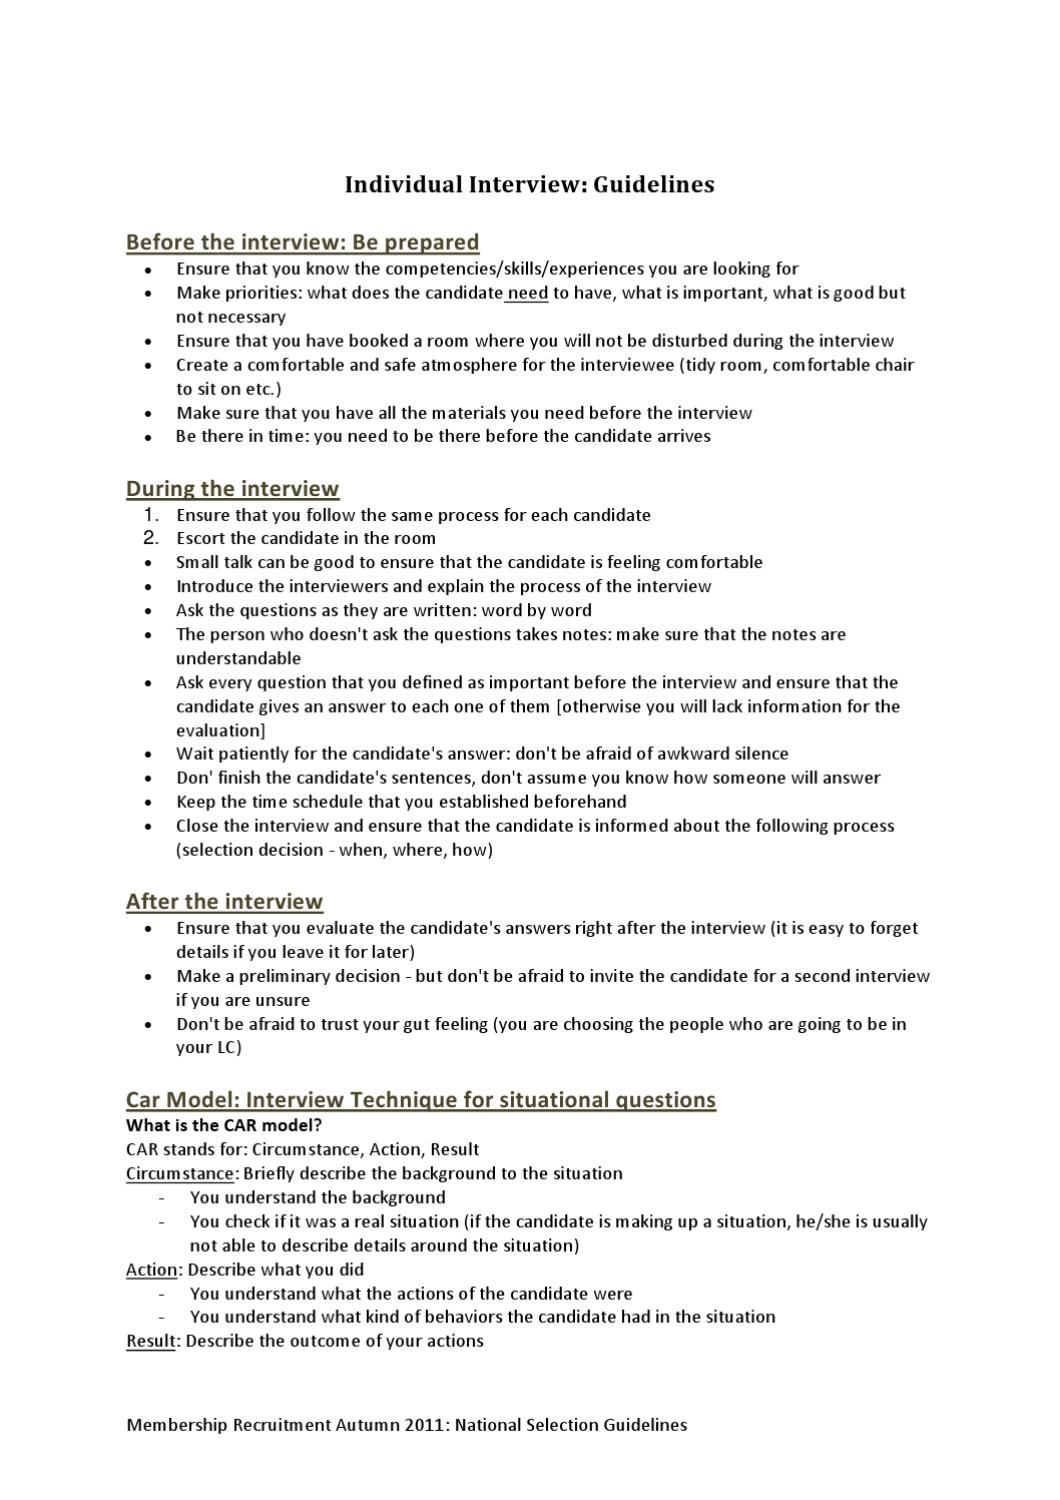 07 individual interview guidelines by aiesec norge issuu individual interview guidelines by aiesec norge issuu